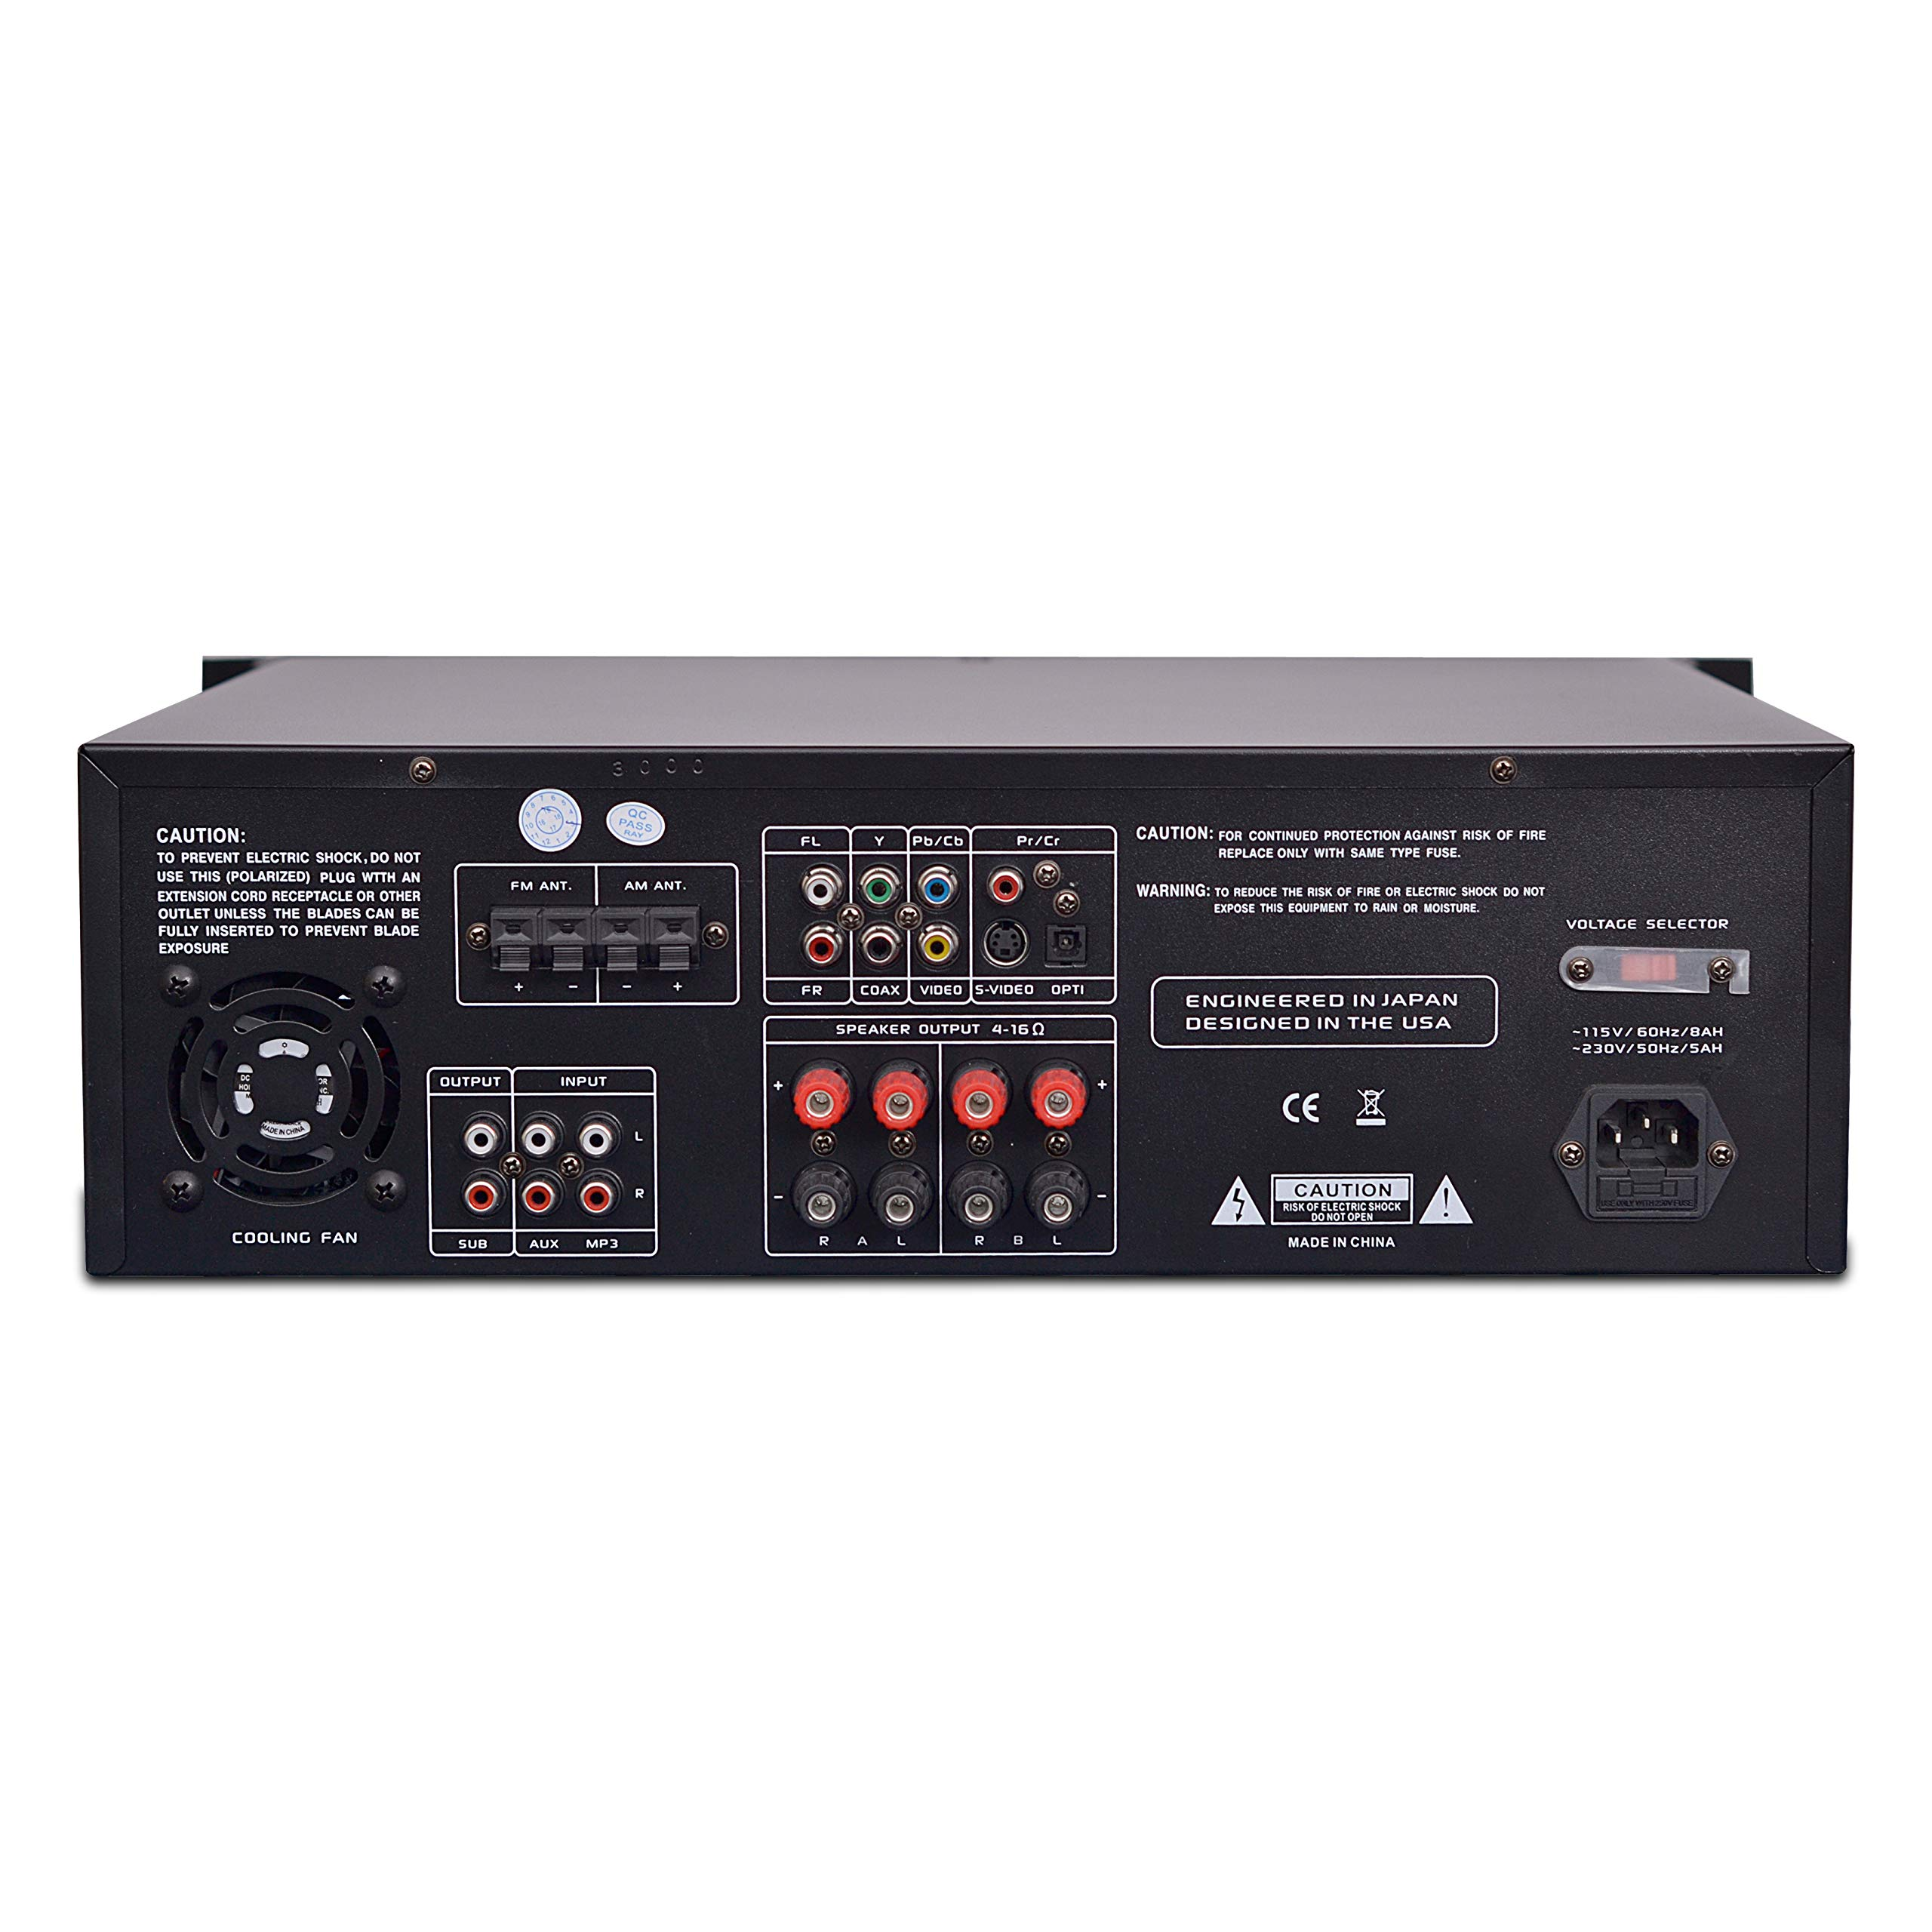 4-Channel Home Theater Bluetooth Preamplifier - 3000 Watt Stereo Speaker Home Audio Receiver Preamp w/ Radio, USB, 2 Microphone w/ Echo for Karaoke, CD DVD Player, LCD, Rack Mount - Pyle PD3000BT